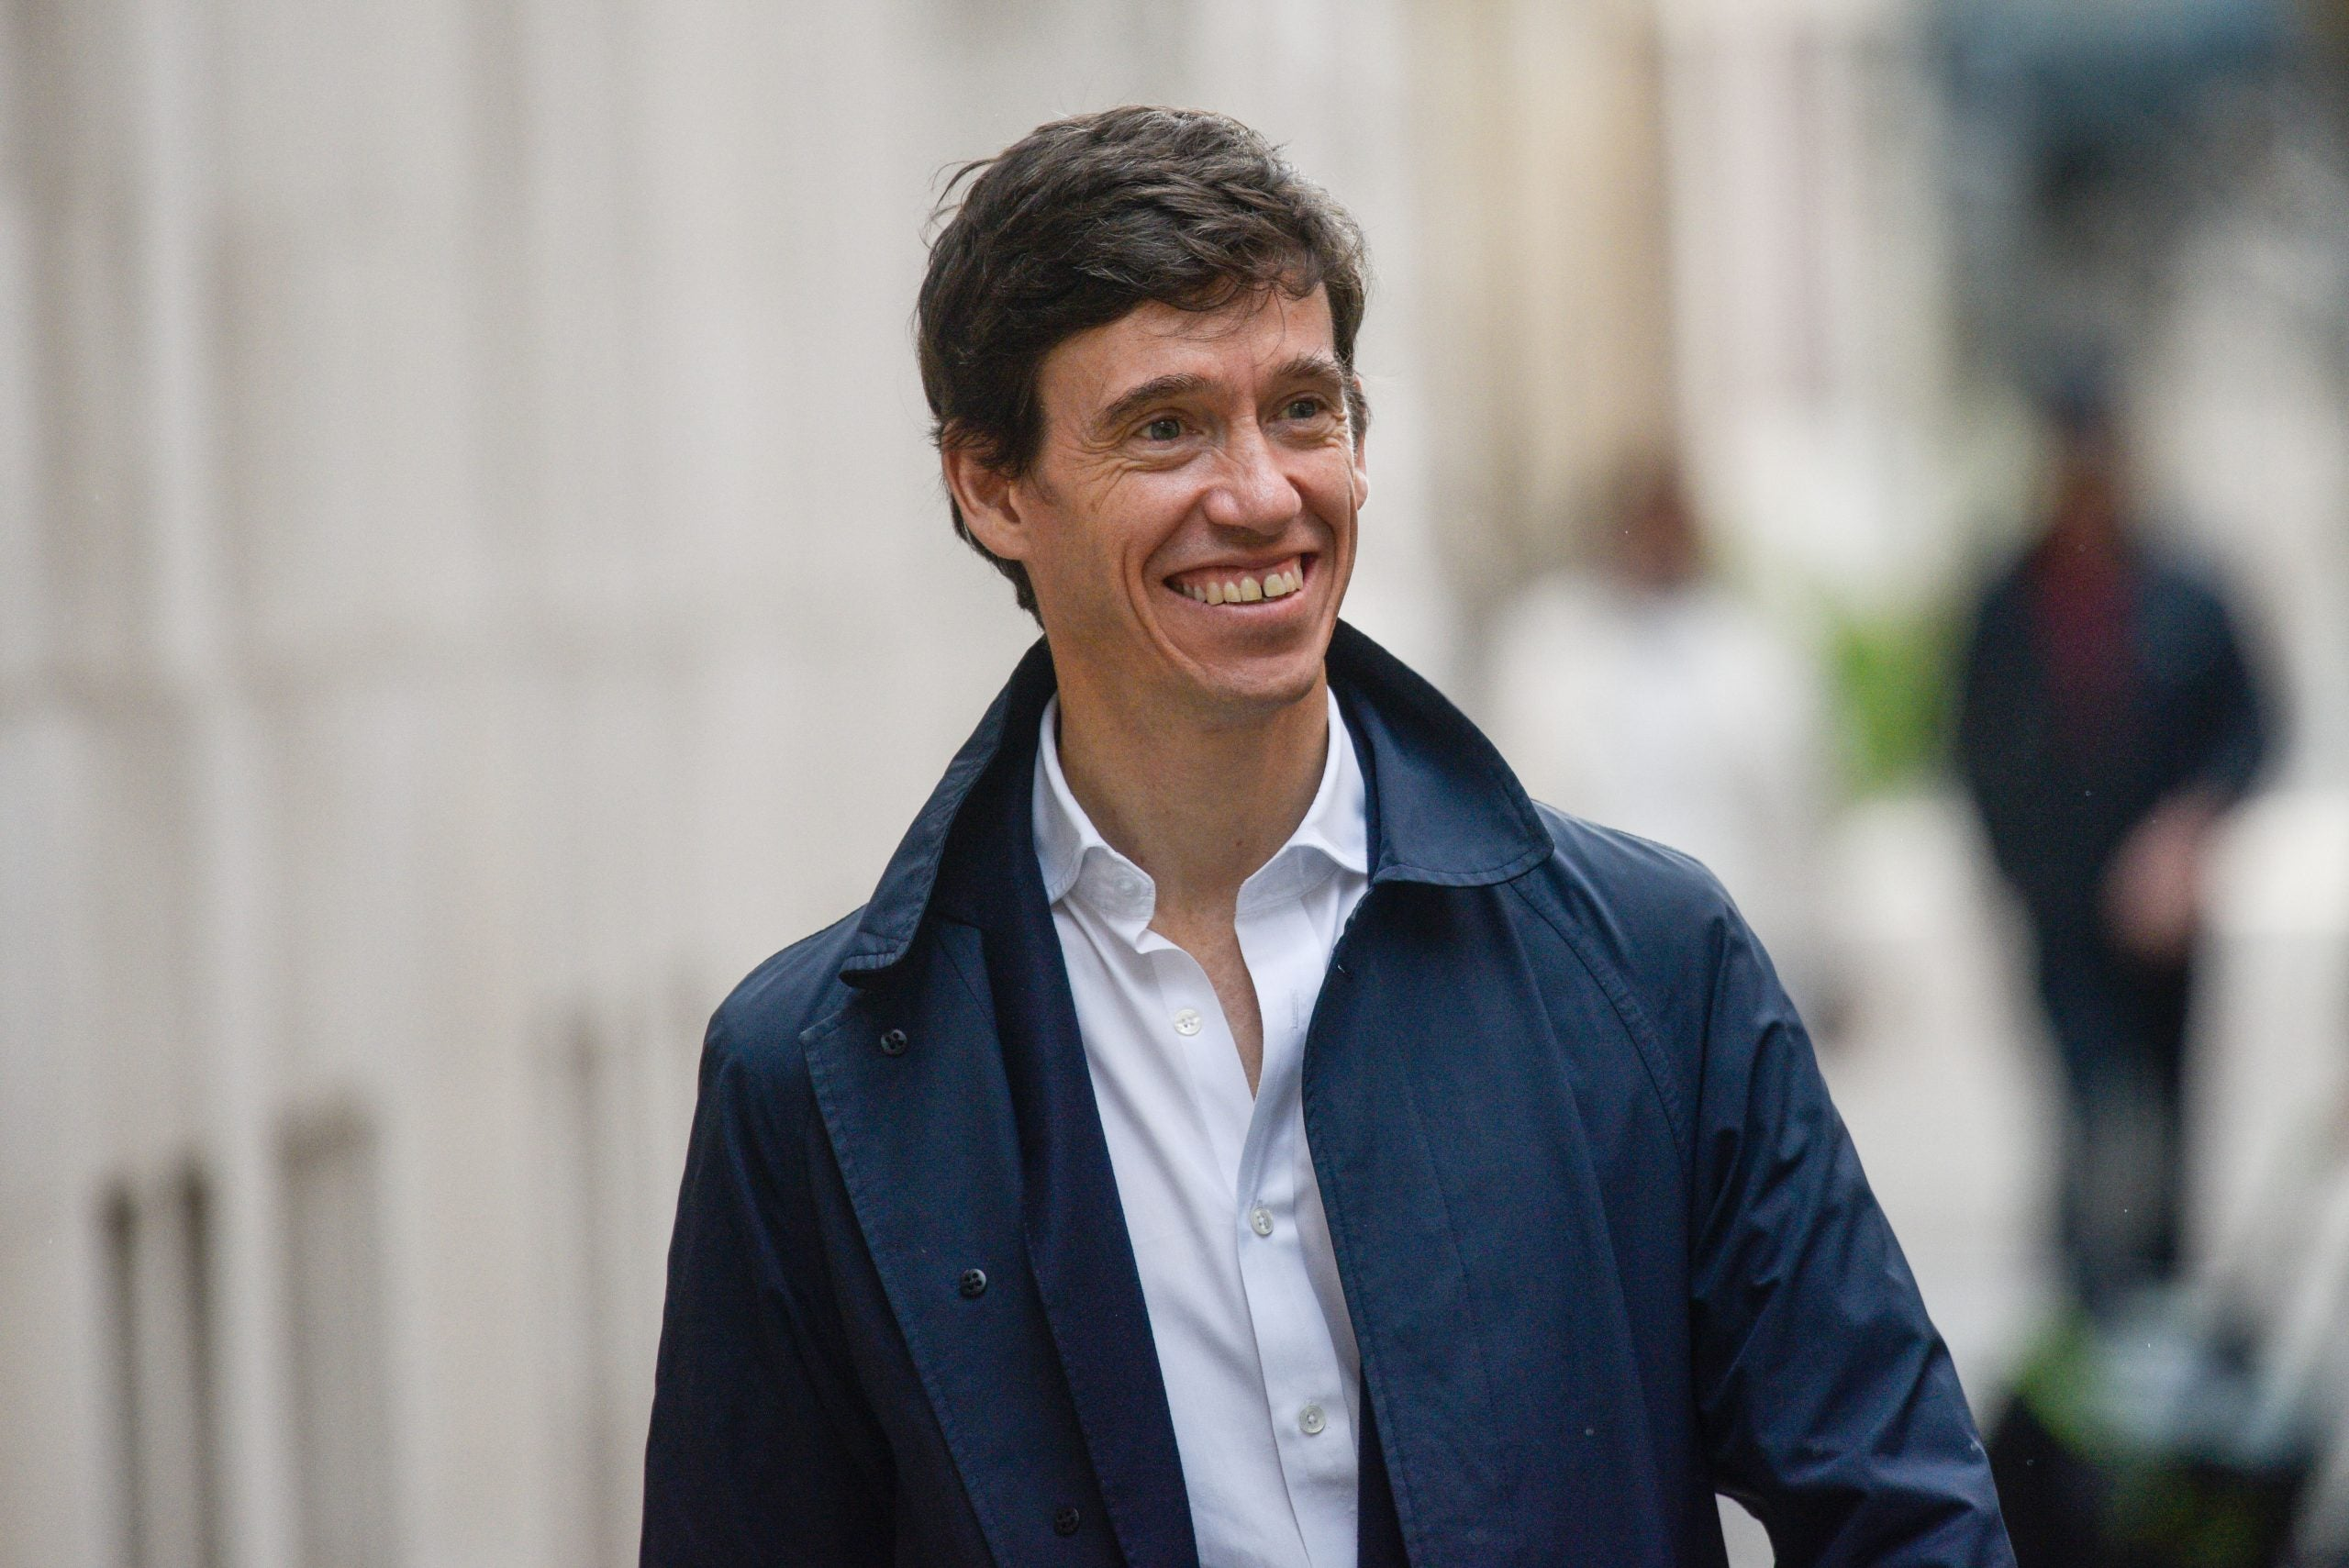 Rory Stewart's Diary: Running for London mayor, life in a gang, and getting coached by Dominic Cummings